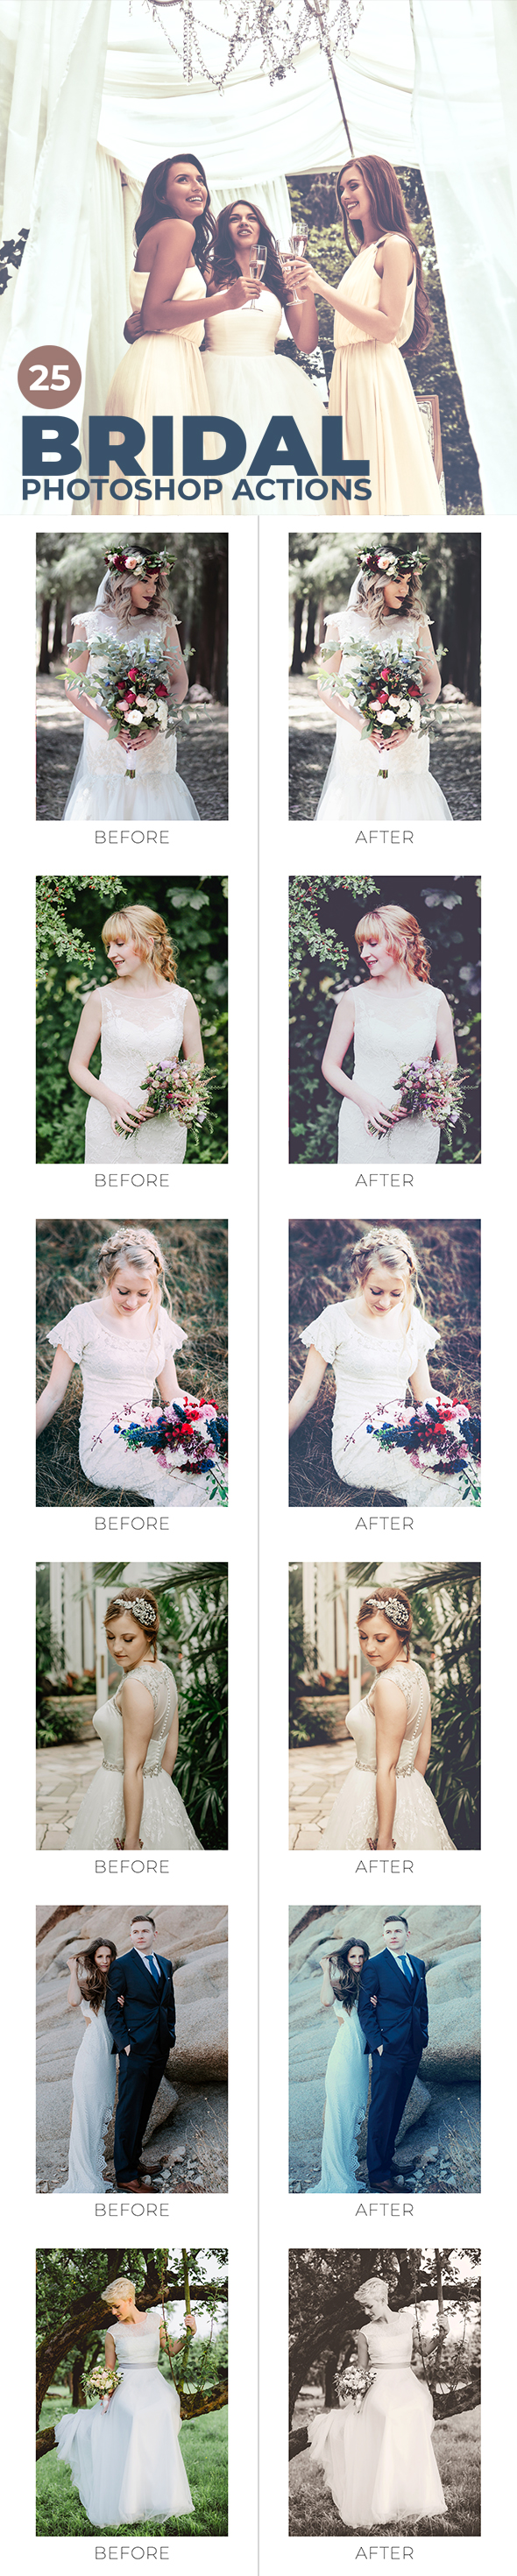 25 Bridal Photoshop Actions - Photo Effects Actions